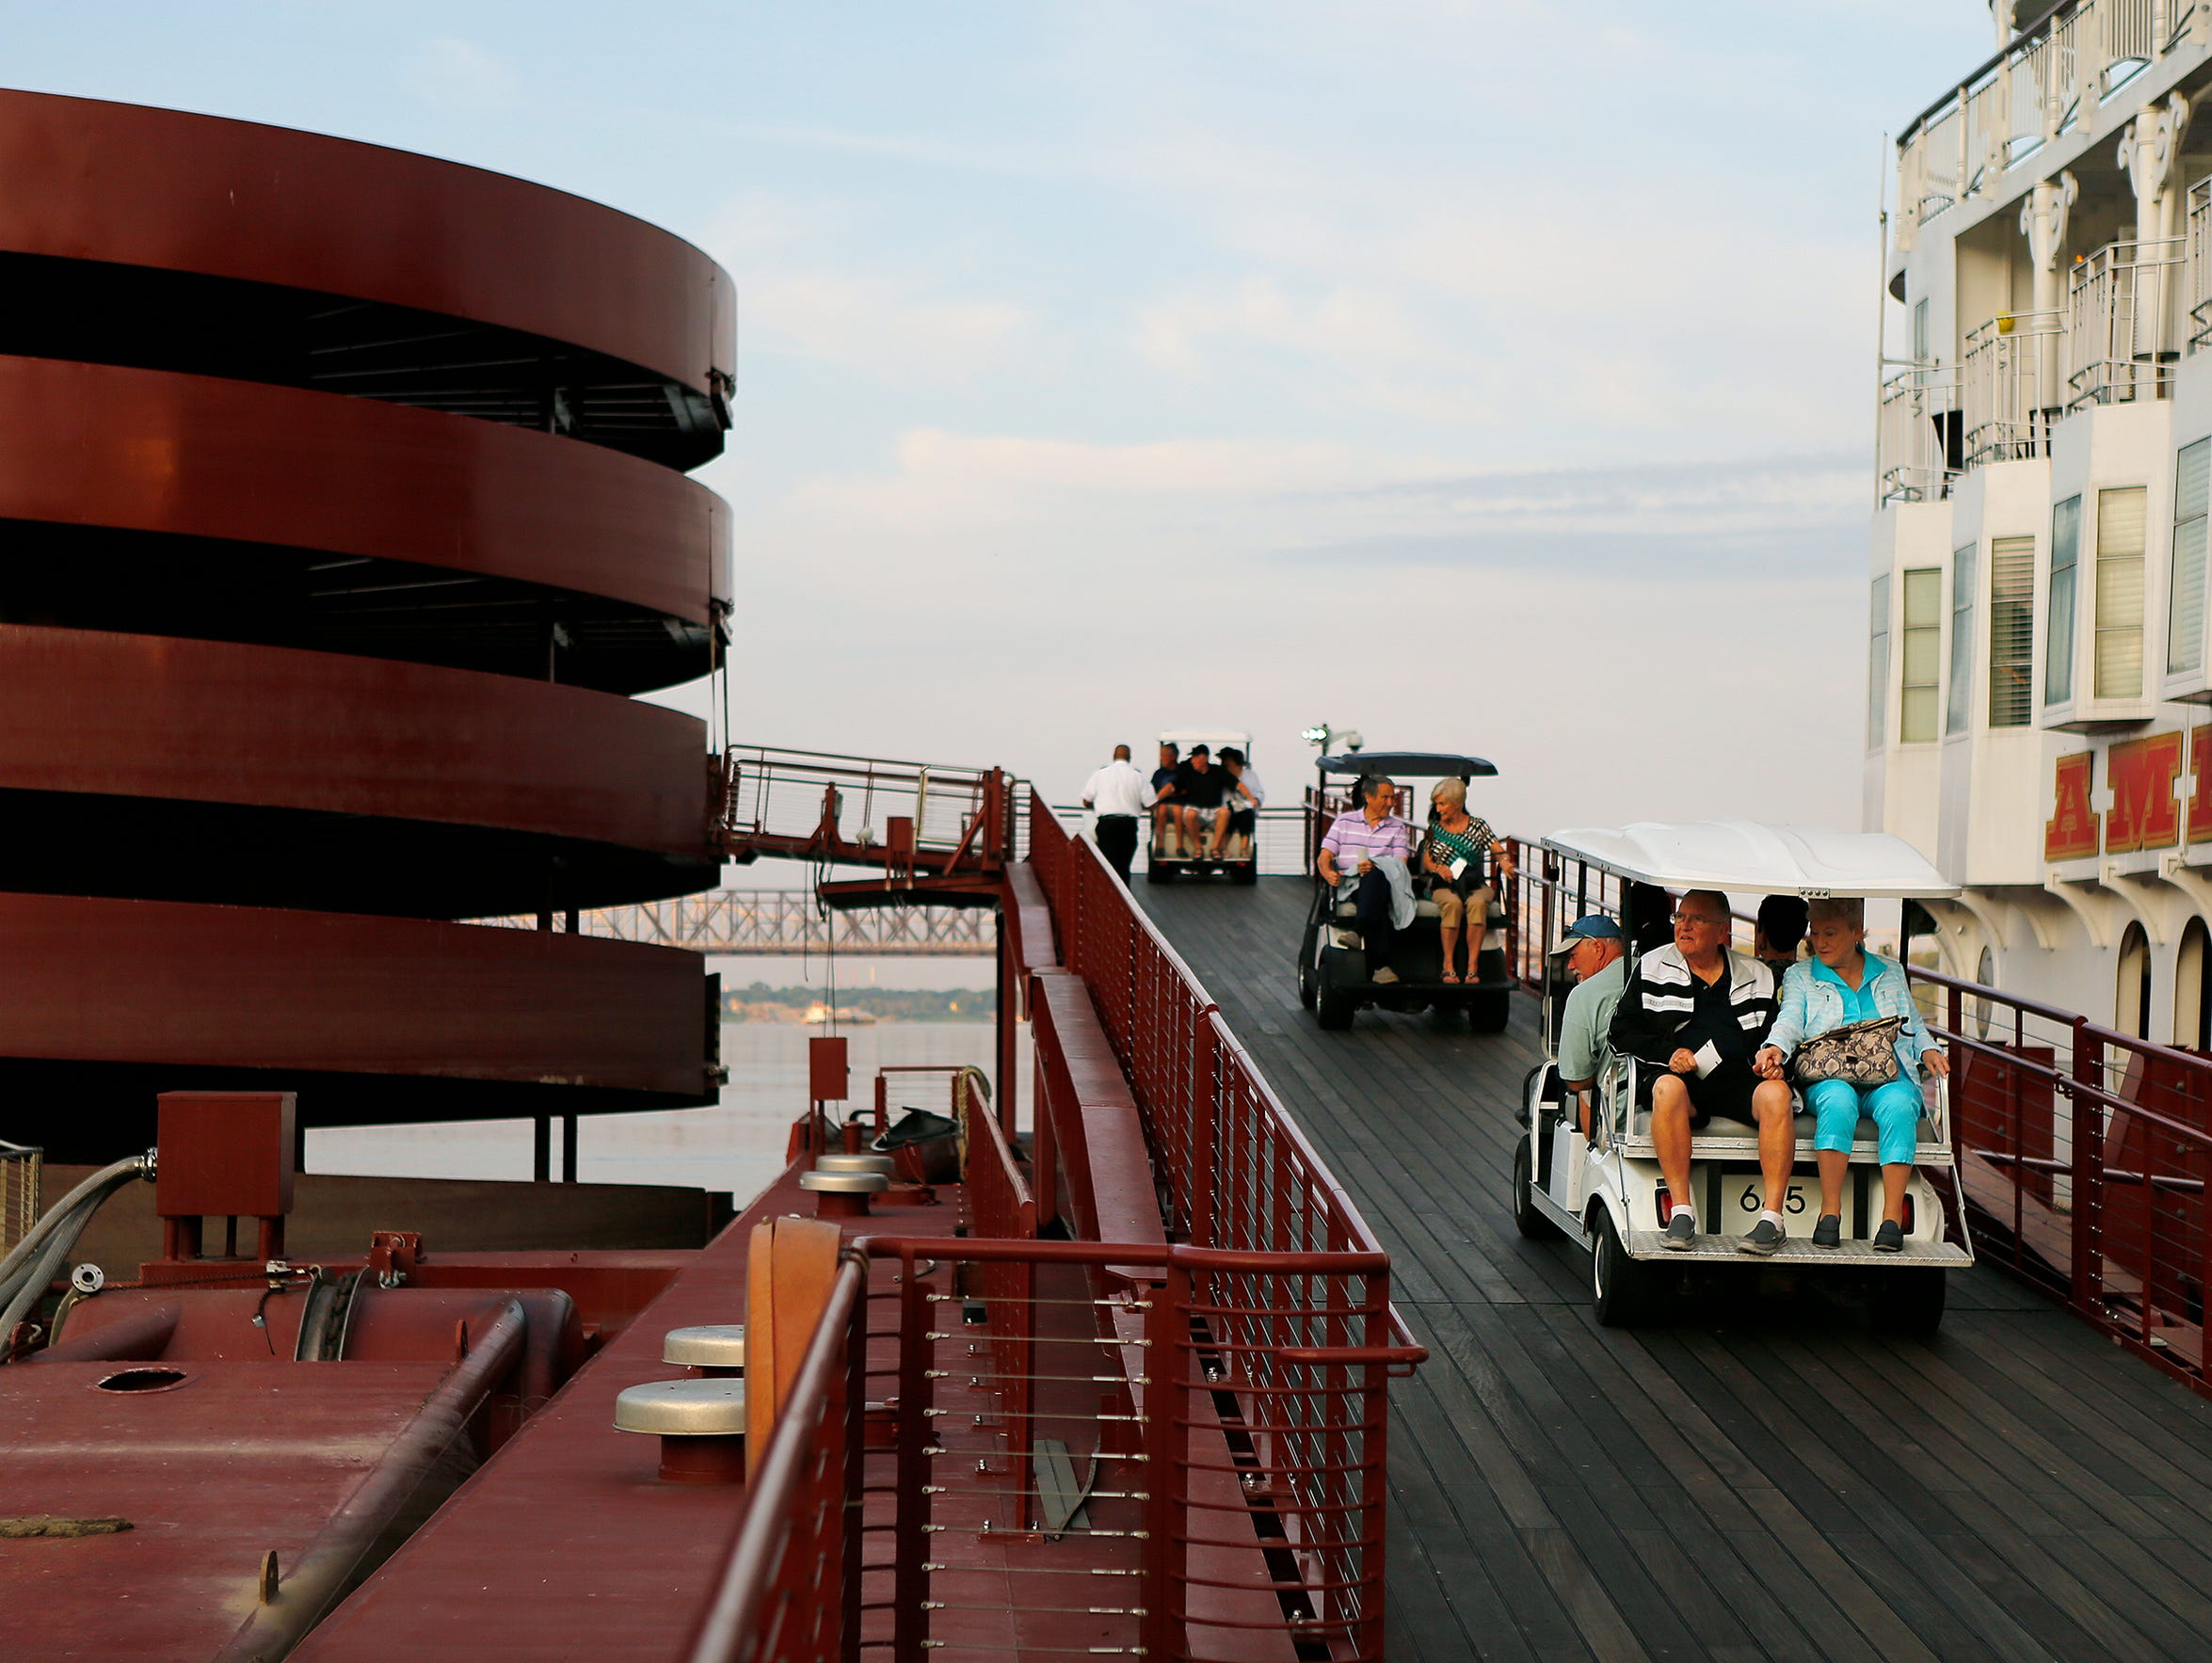 Passengers of the American Queen steamboat are shuttled